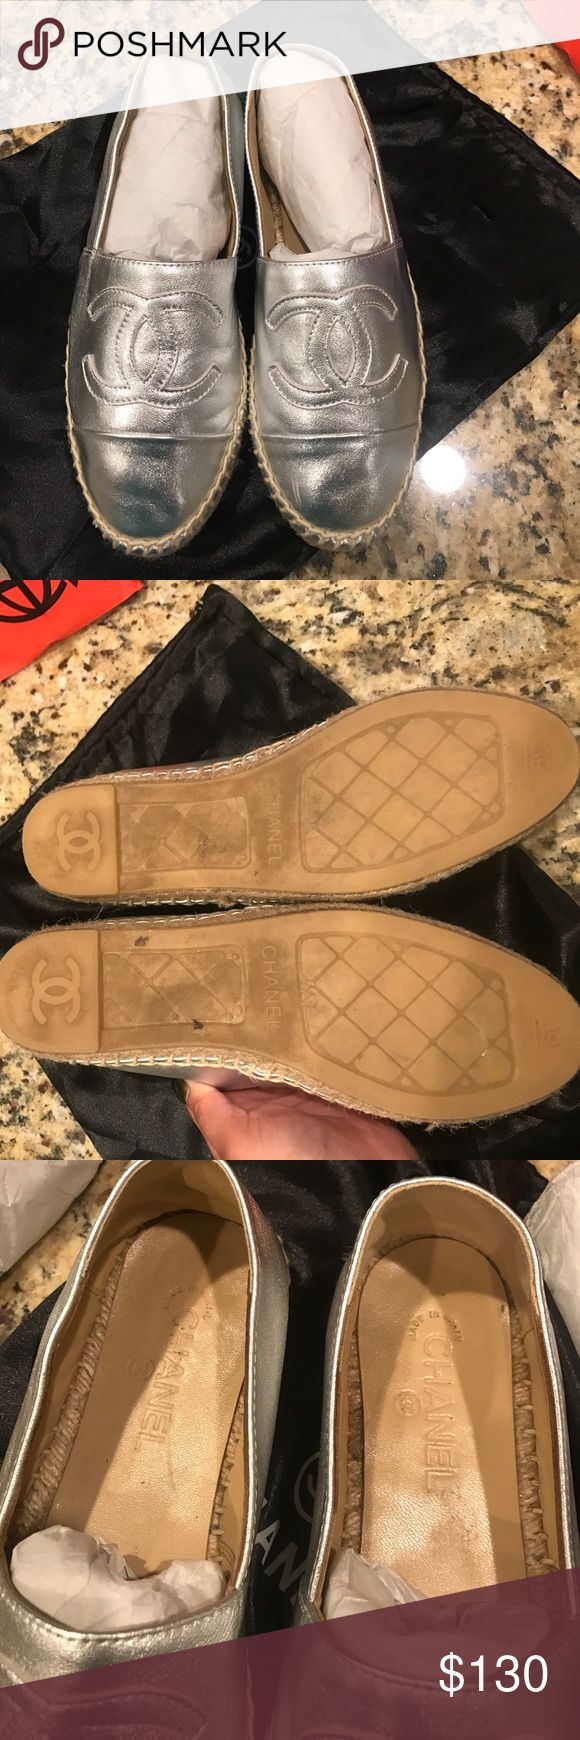 Chanel Espadrilles Inspired look. Great quality. Worn once. Firm priced item. Silver metallic color.  Like new. Shoes Espadrilles